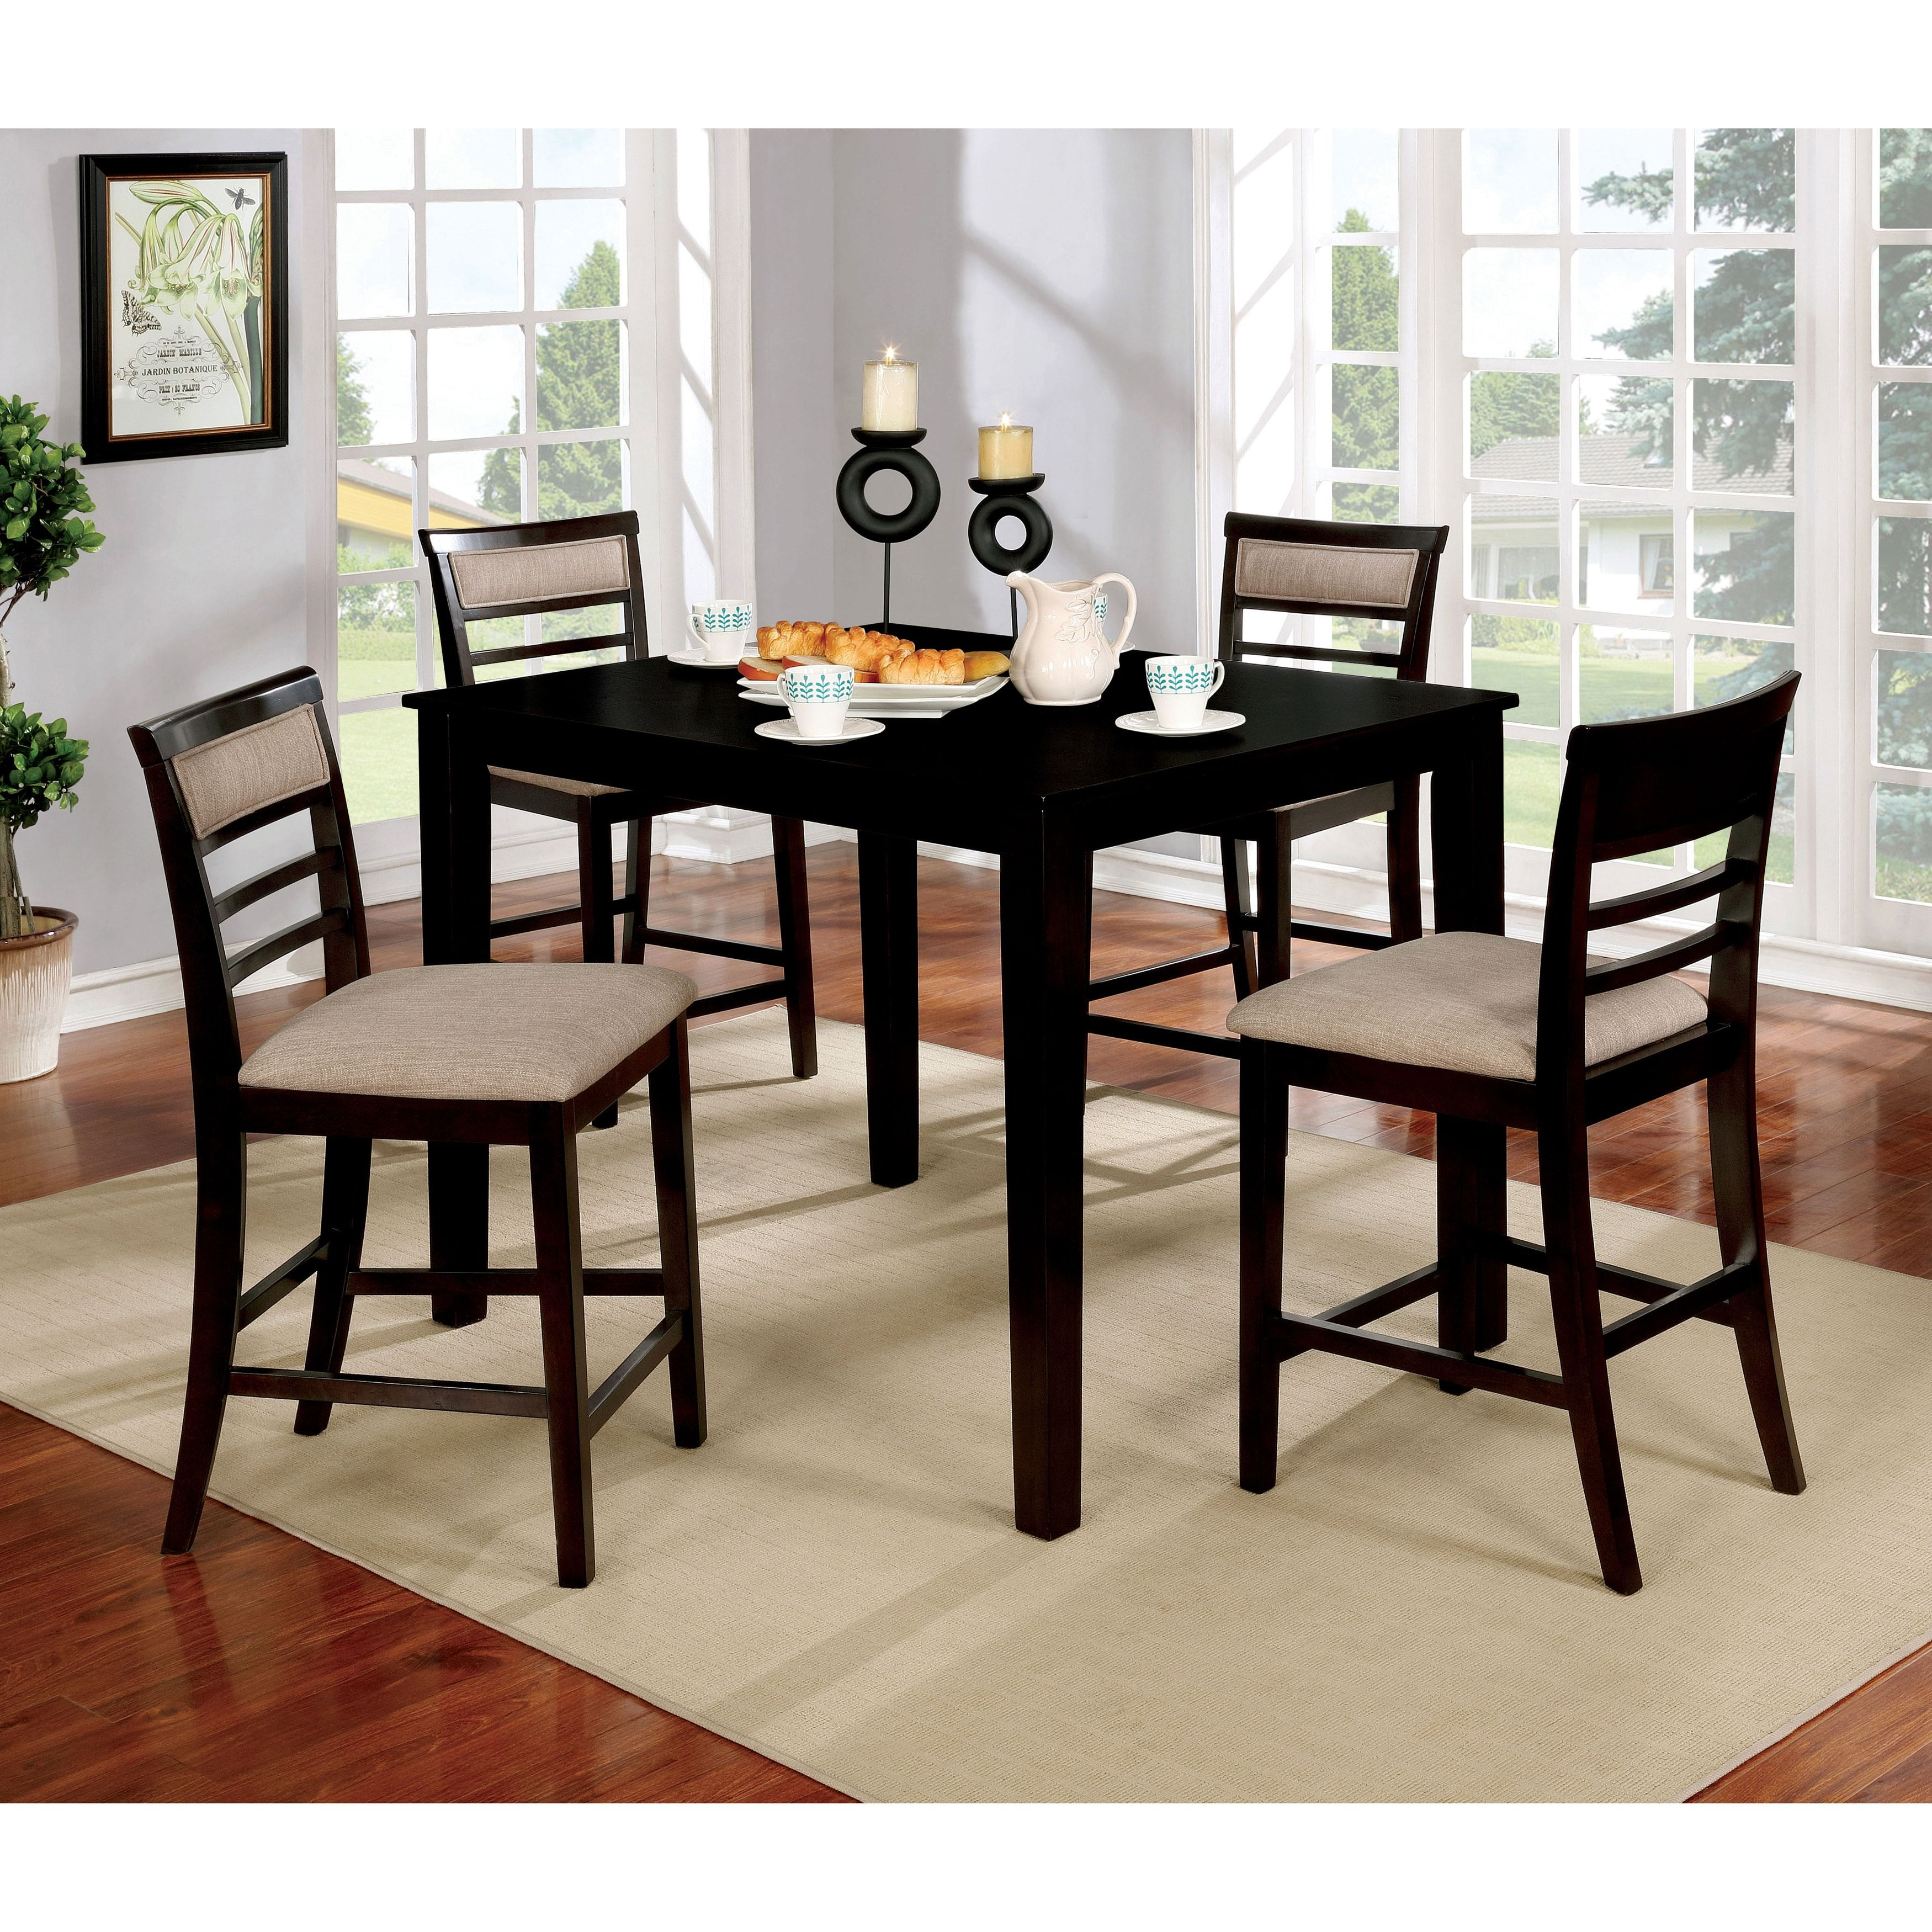 Furniture of America Yevana Contemporary 5 piece Counter Height